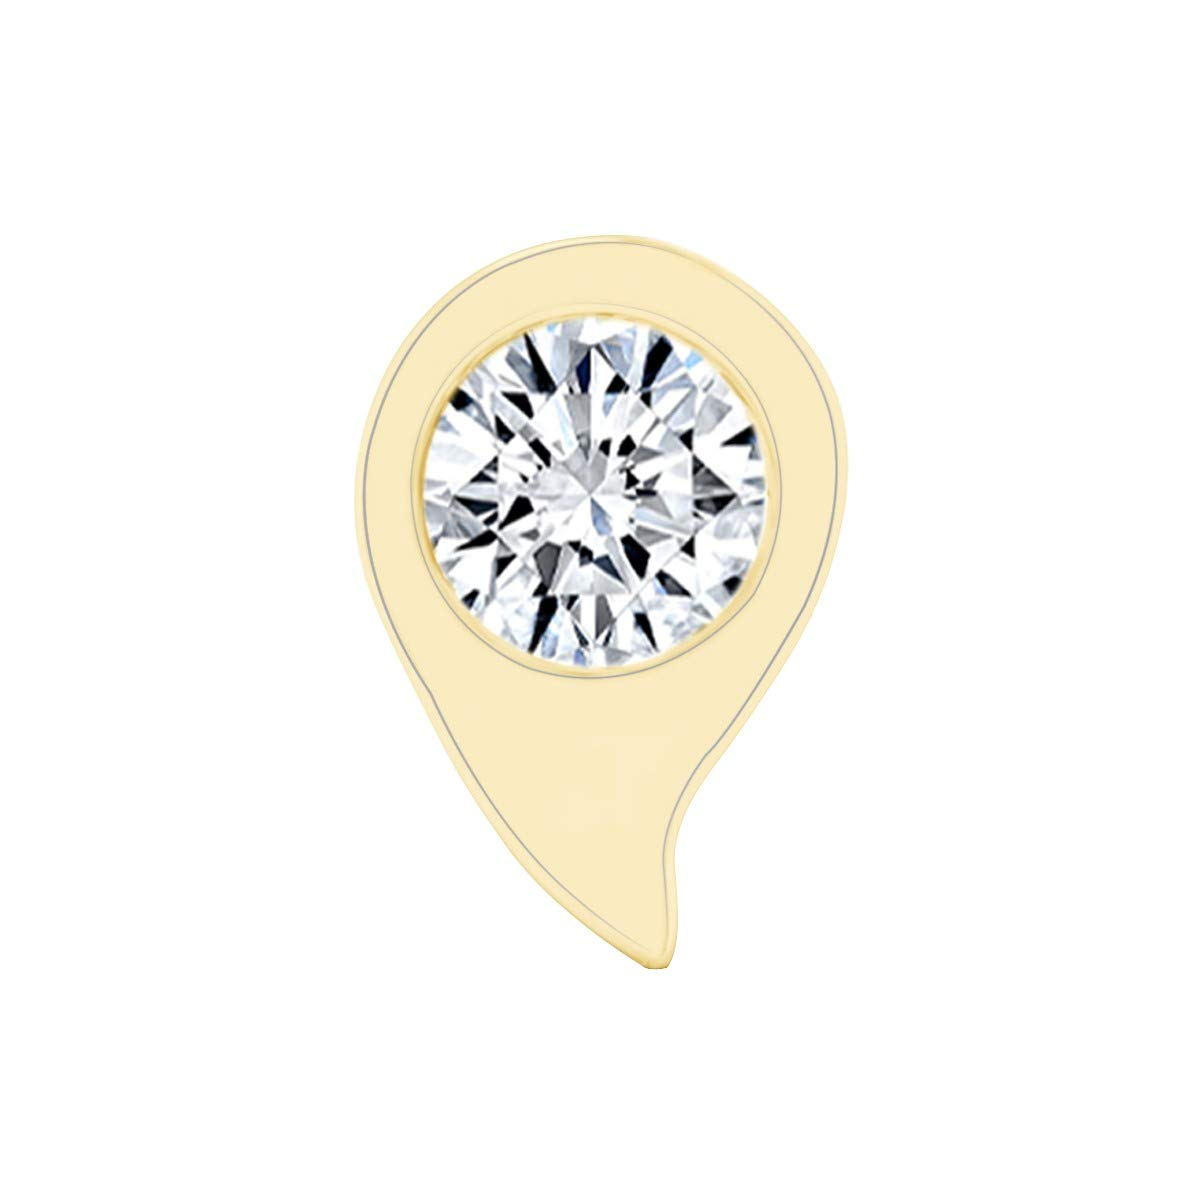 Natural Diamond Teardrop Solitaire Nosepin 14k Solid Gold AFFY MNo-M-CMNP1709-RG